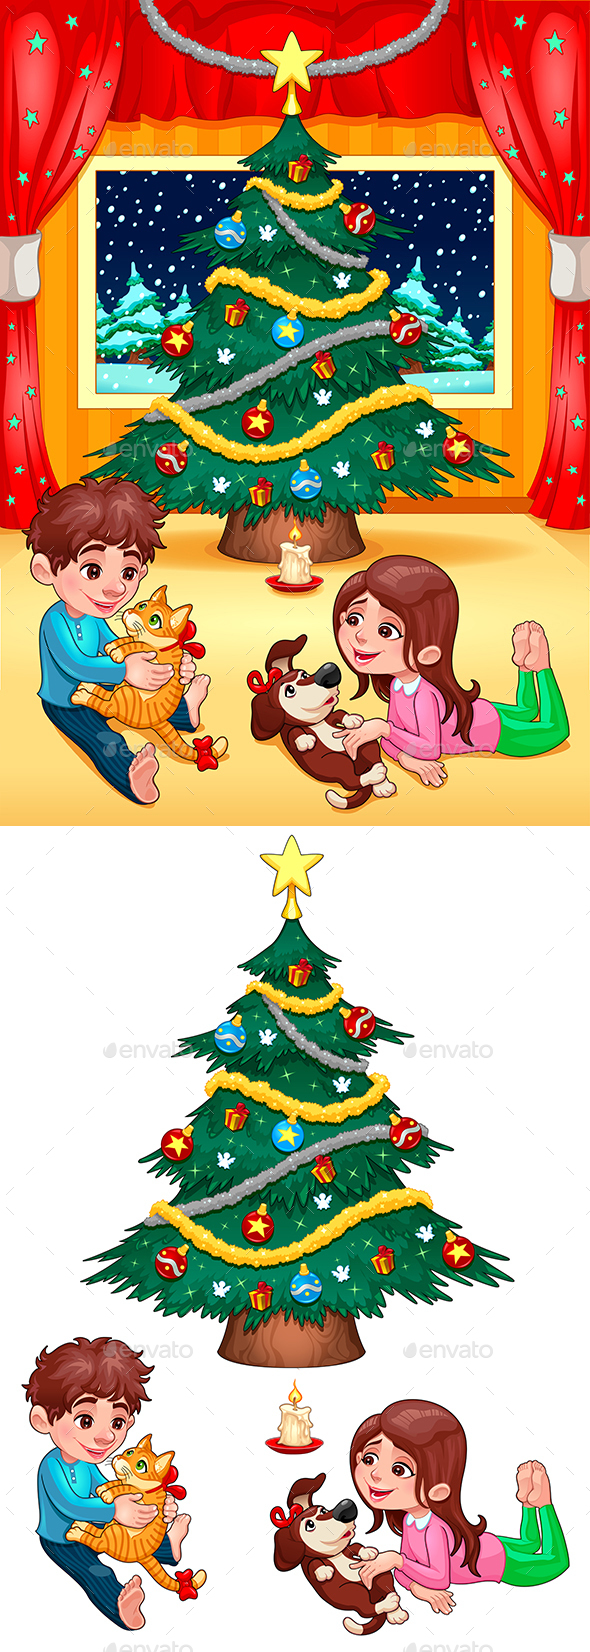 Christmas Scene with Children and Pets